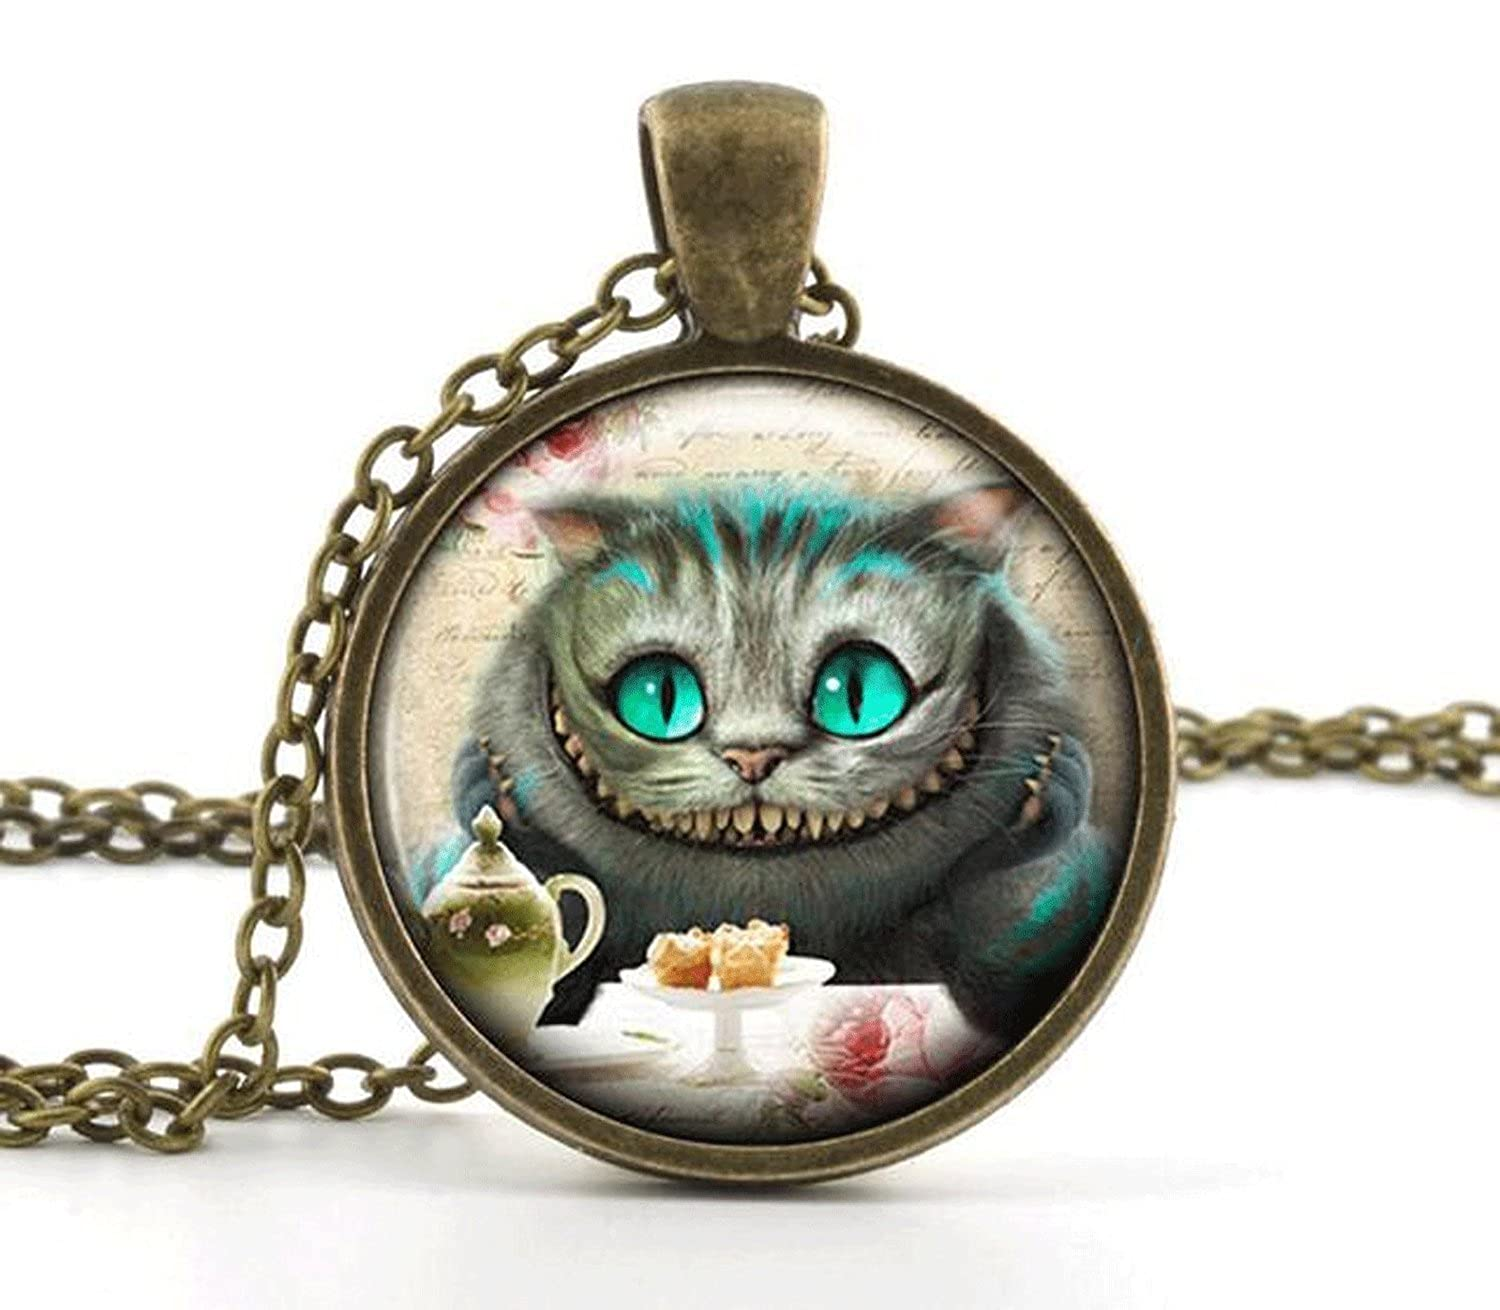 Vintage Alice in Wonderland Pendant Necklace - Cheshire Cat Jewellery Taylor9005